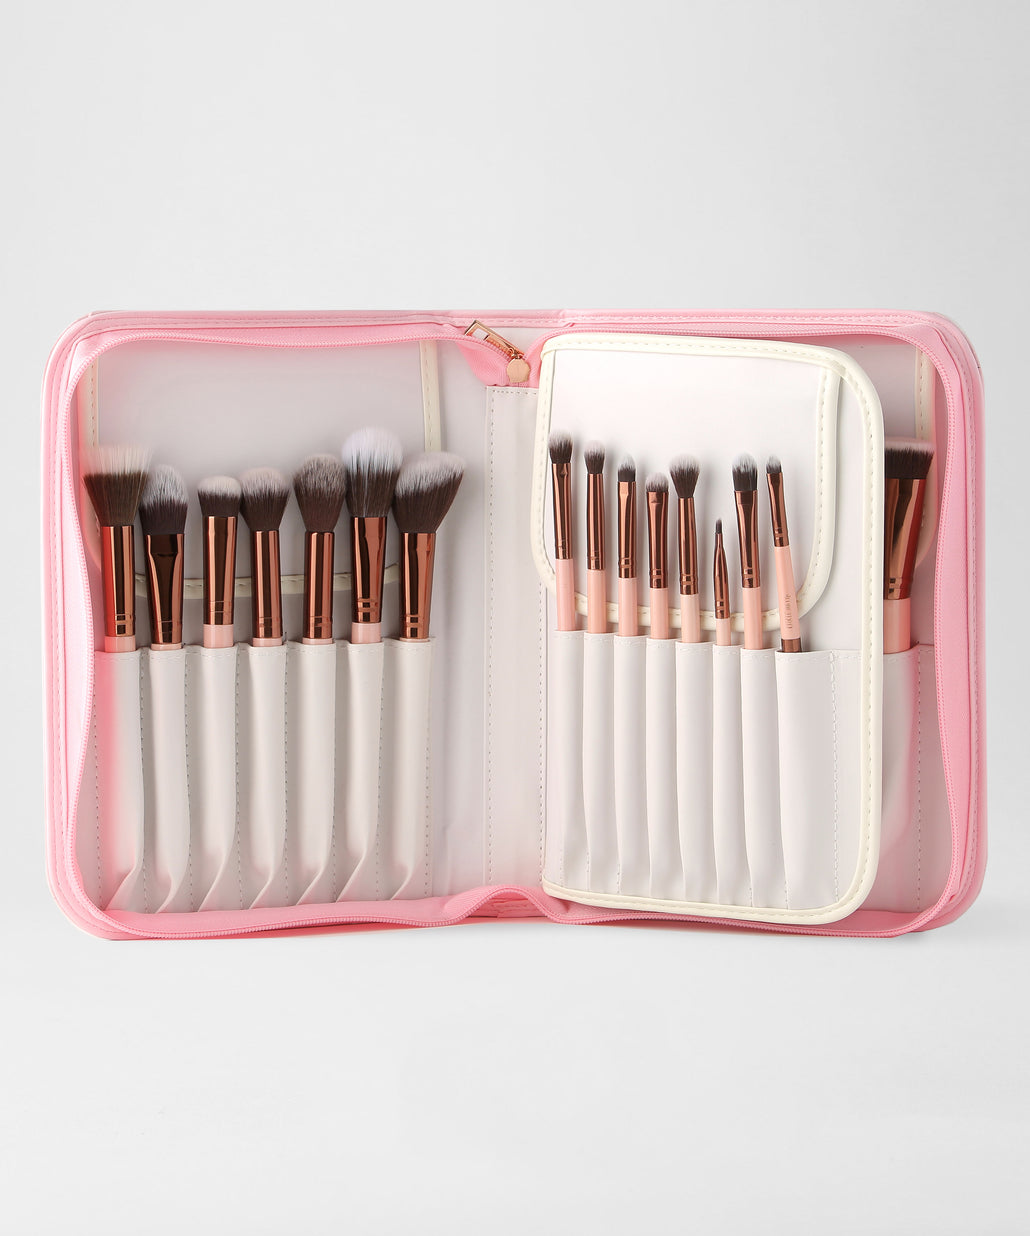 LUXIE 30 Piece Brush Set - Rose Gold